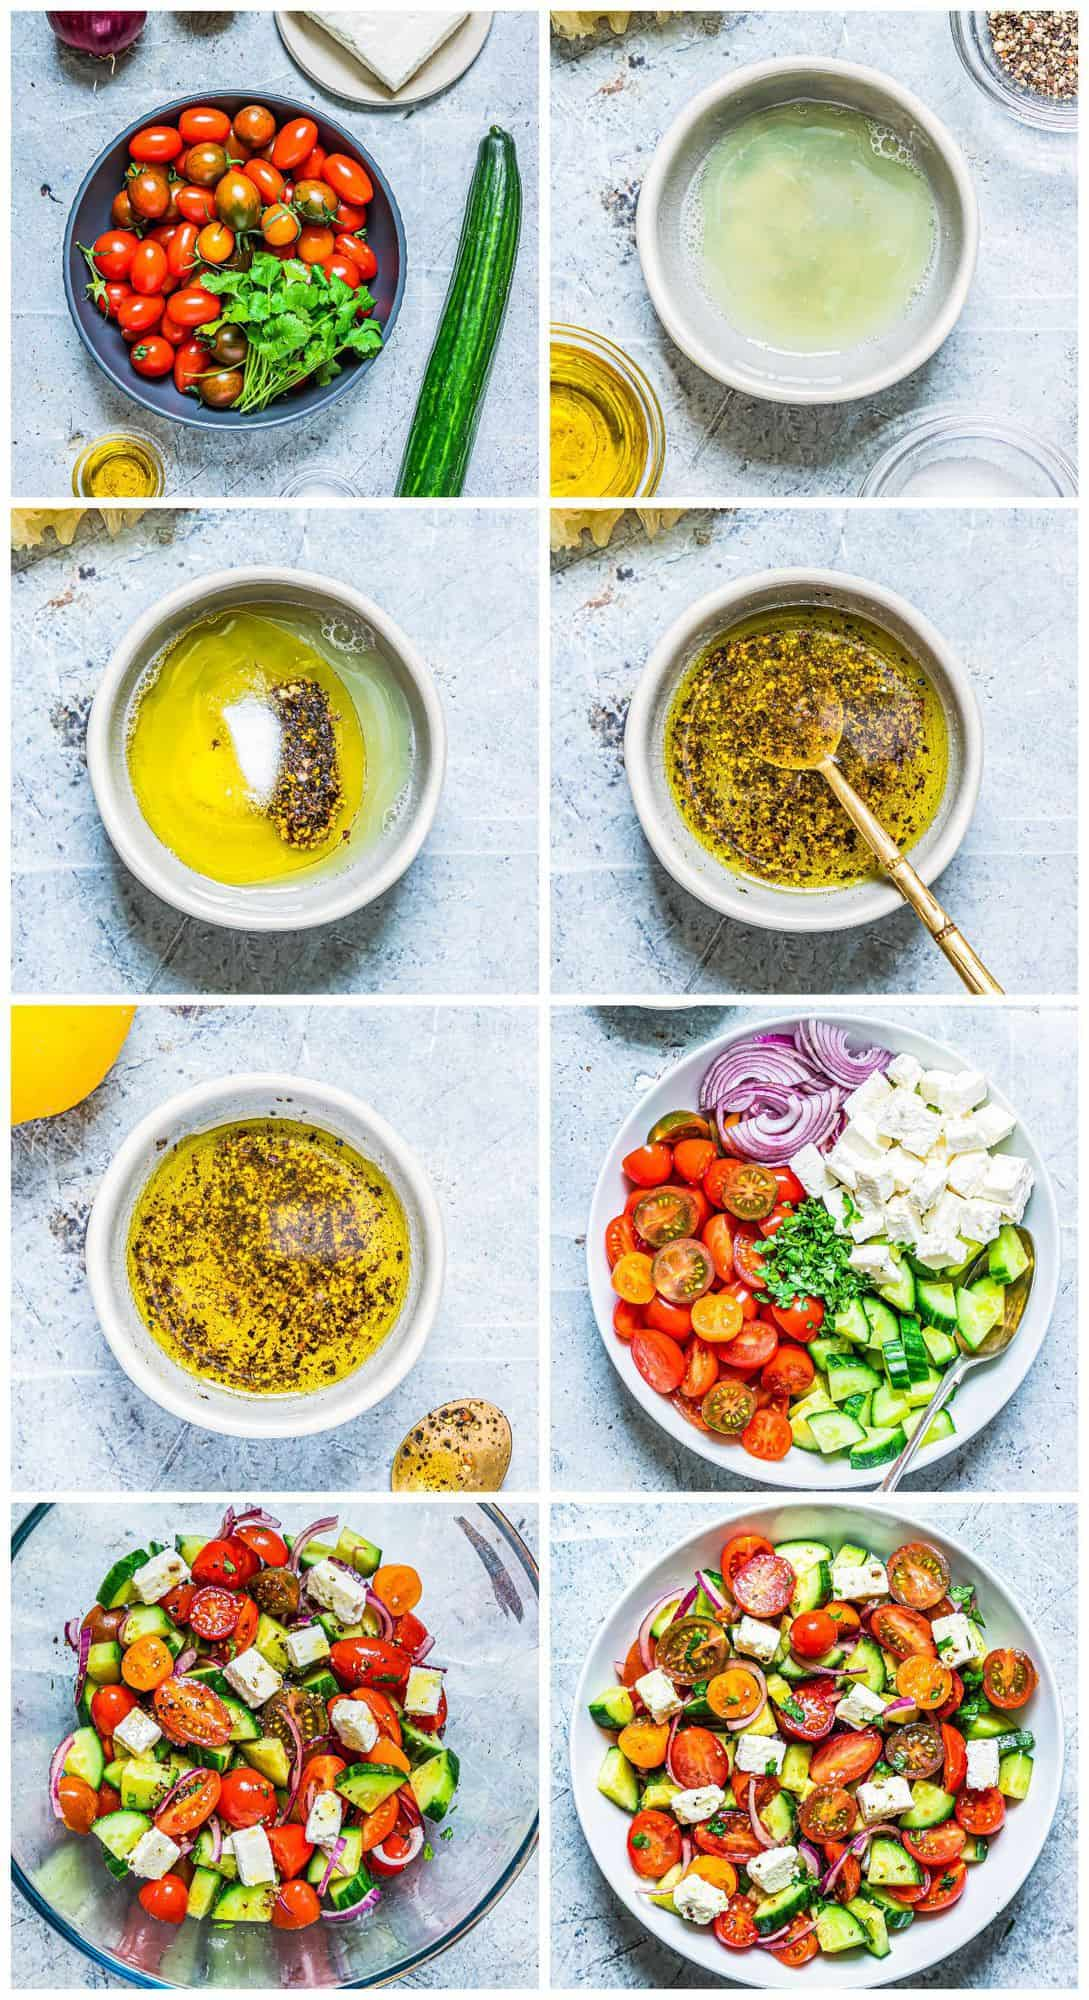 step by step photos for how to make cucumber tomato salad